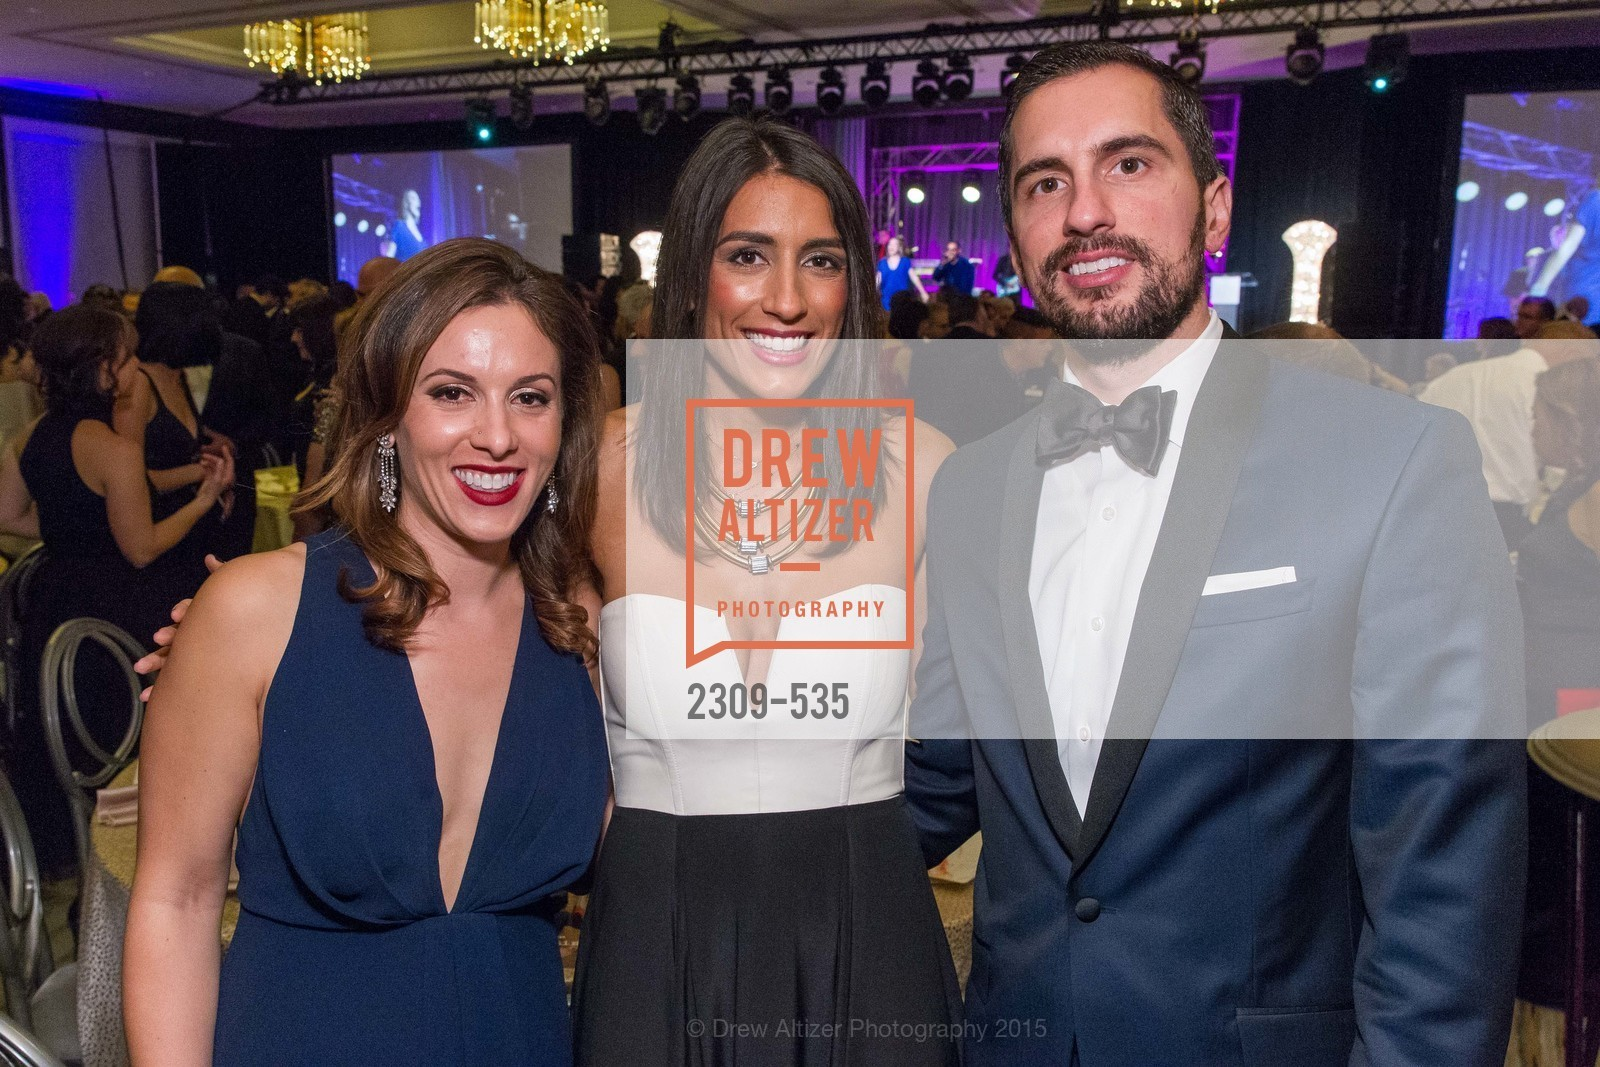 Top Picks, Hellenic Charity Ball, November 14th, 2015, Photo,Drew Altizer, Drew Altizer Photography, full-service event agency, private events, San Francisco photographer, photographer California